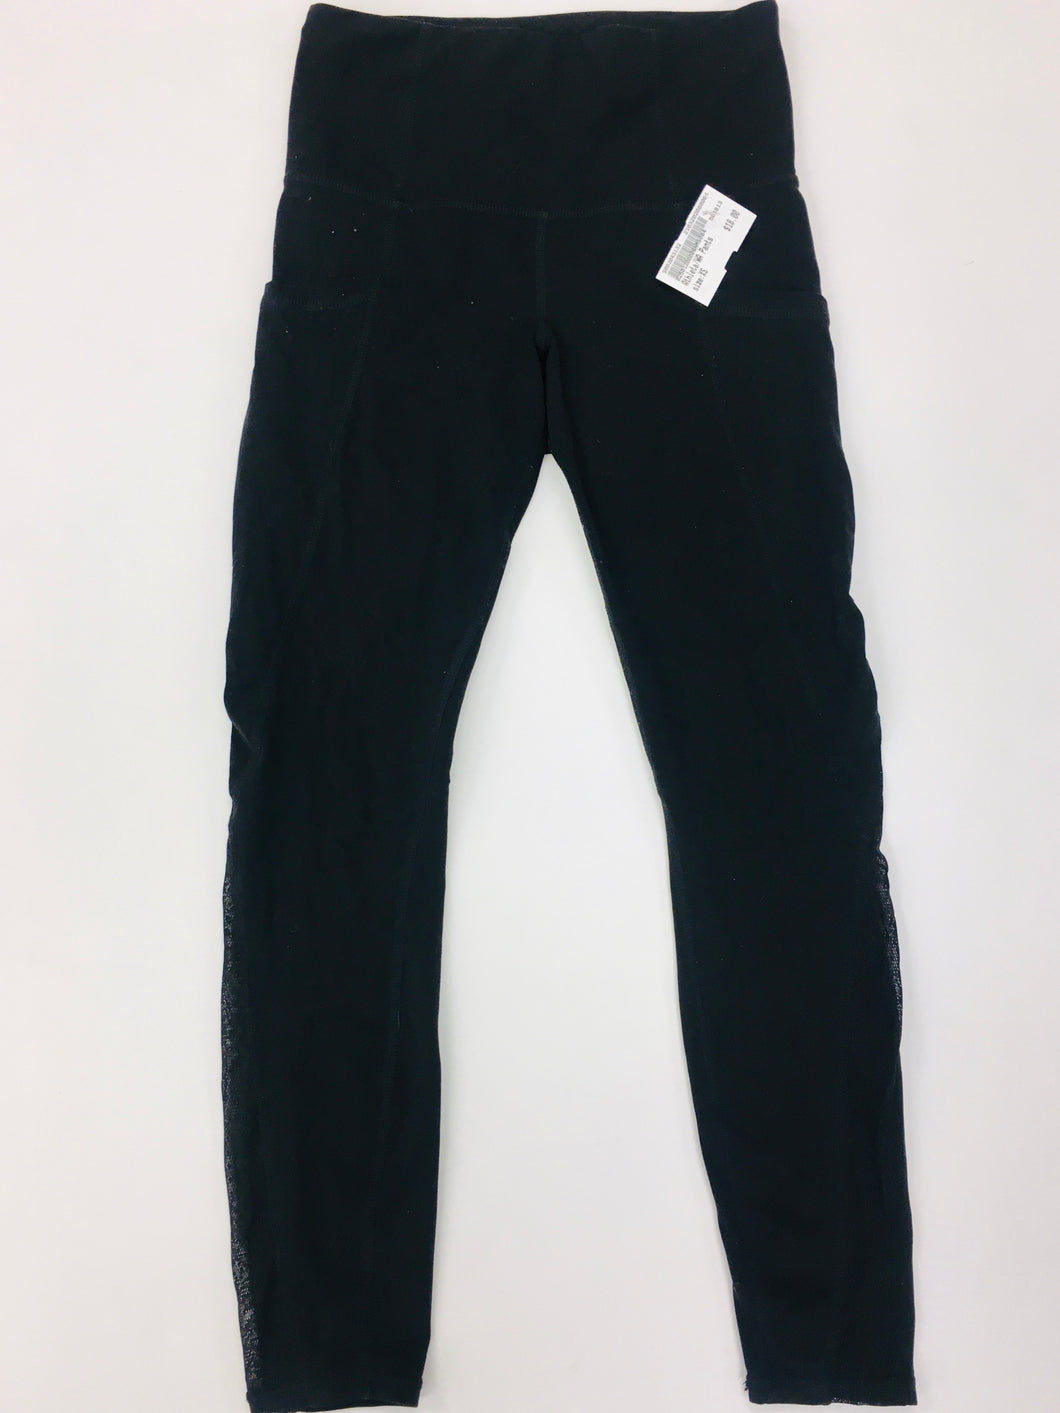 Athleta Athletic Pants Women's Size Extra Small